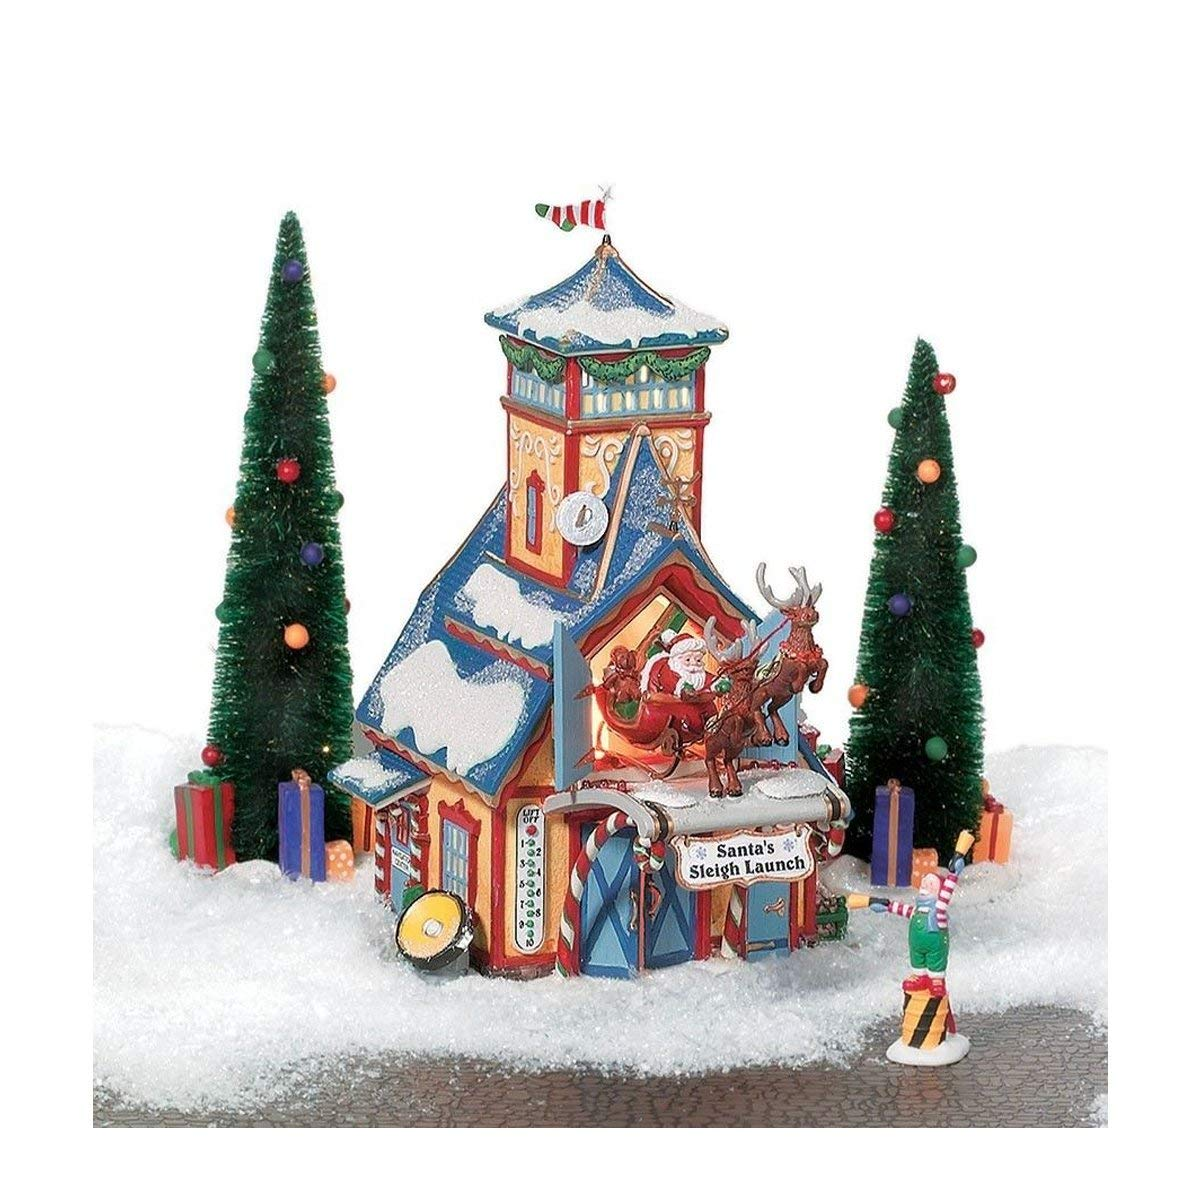 Santa's Sleigh Launch, Discover Department 56 Limited Edition Gift Set, 5 Piece Set, 56734, D56, North Pole Series, North Pole Village, Retired Collectible